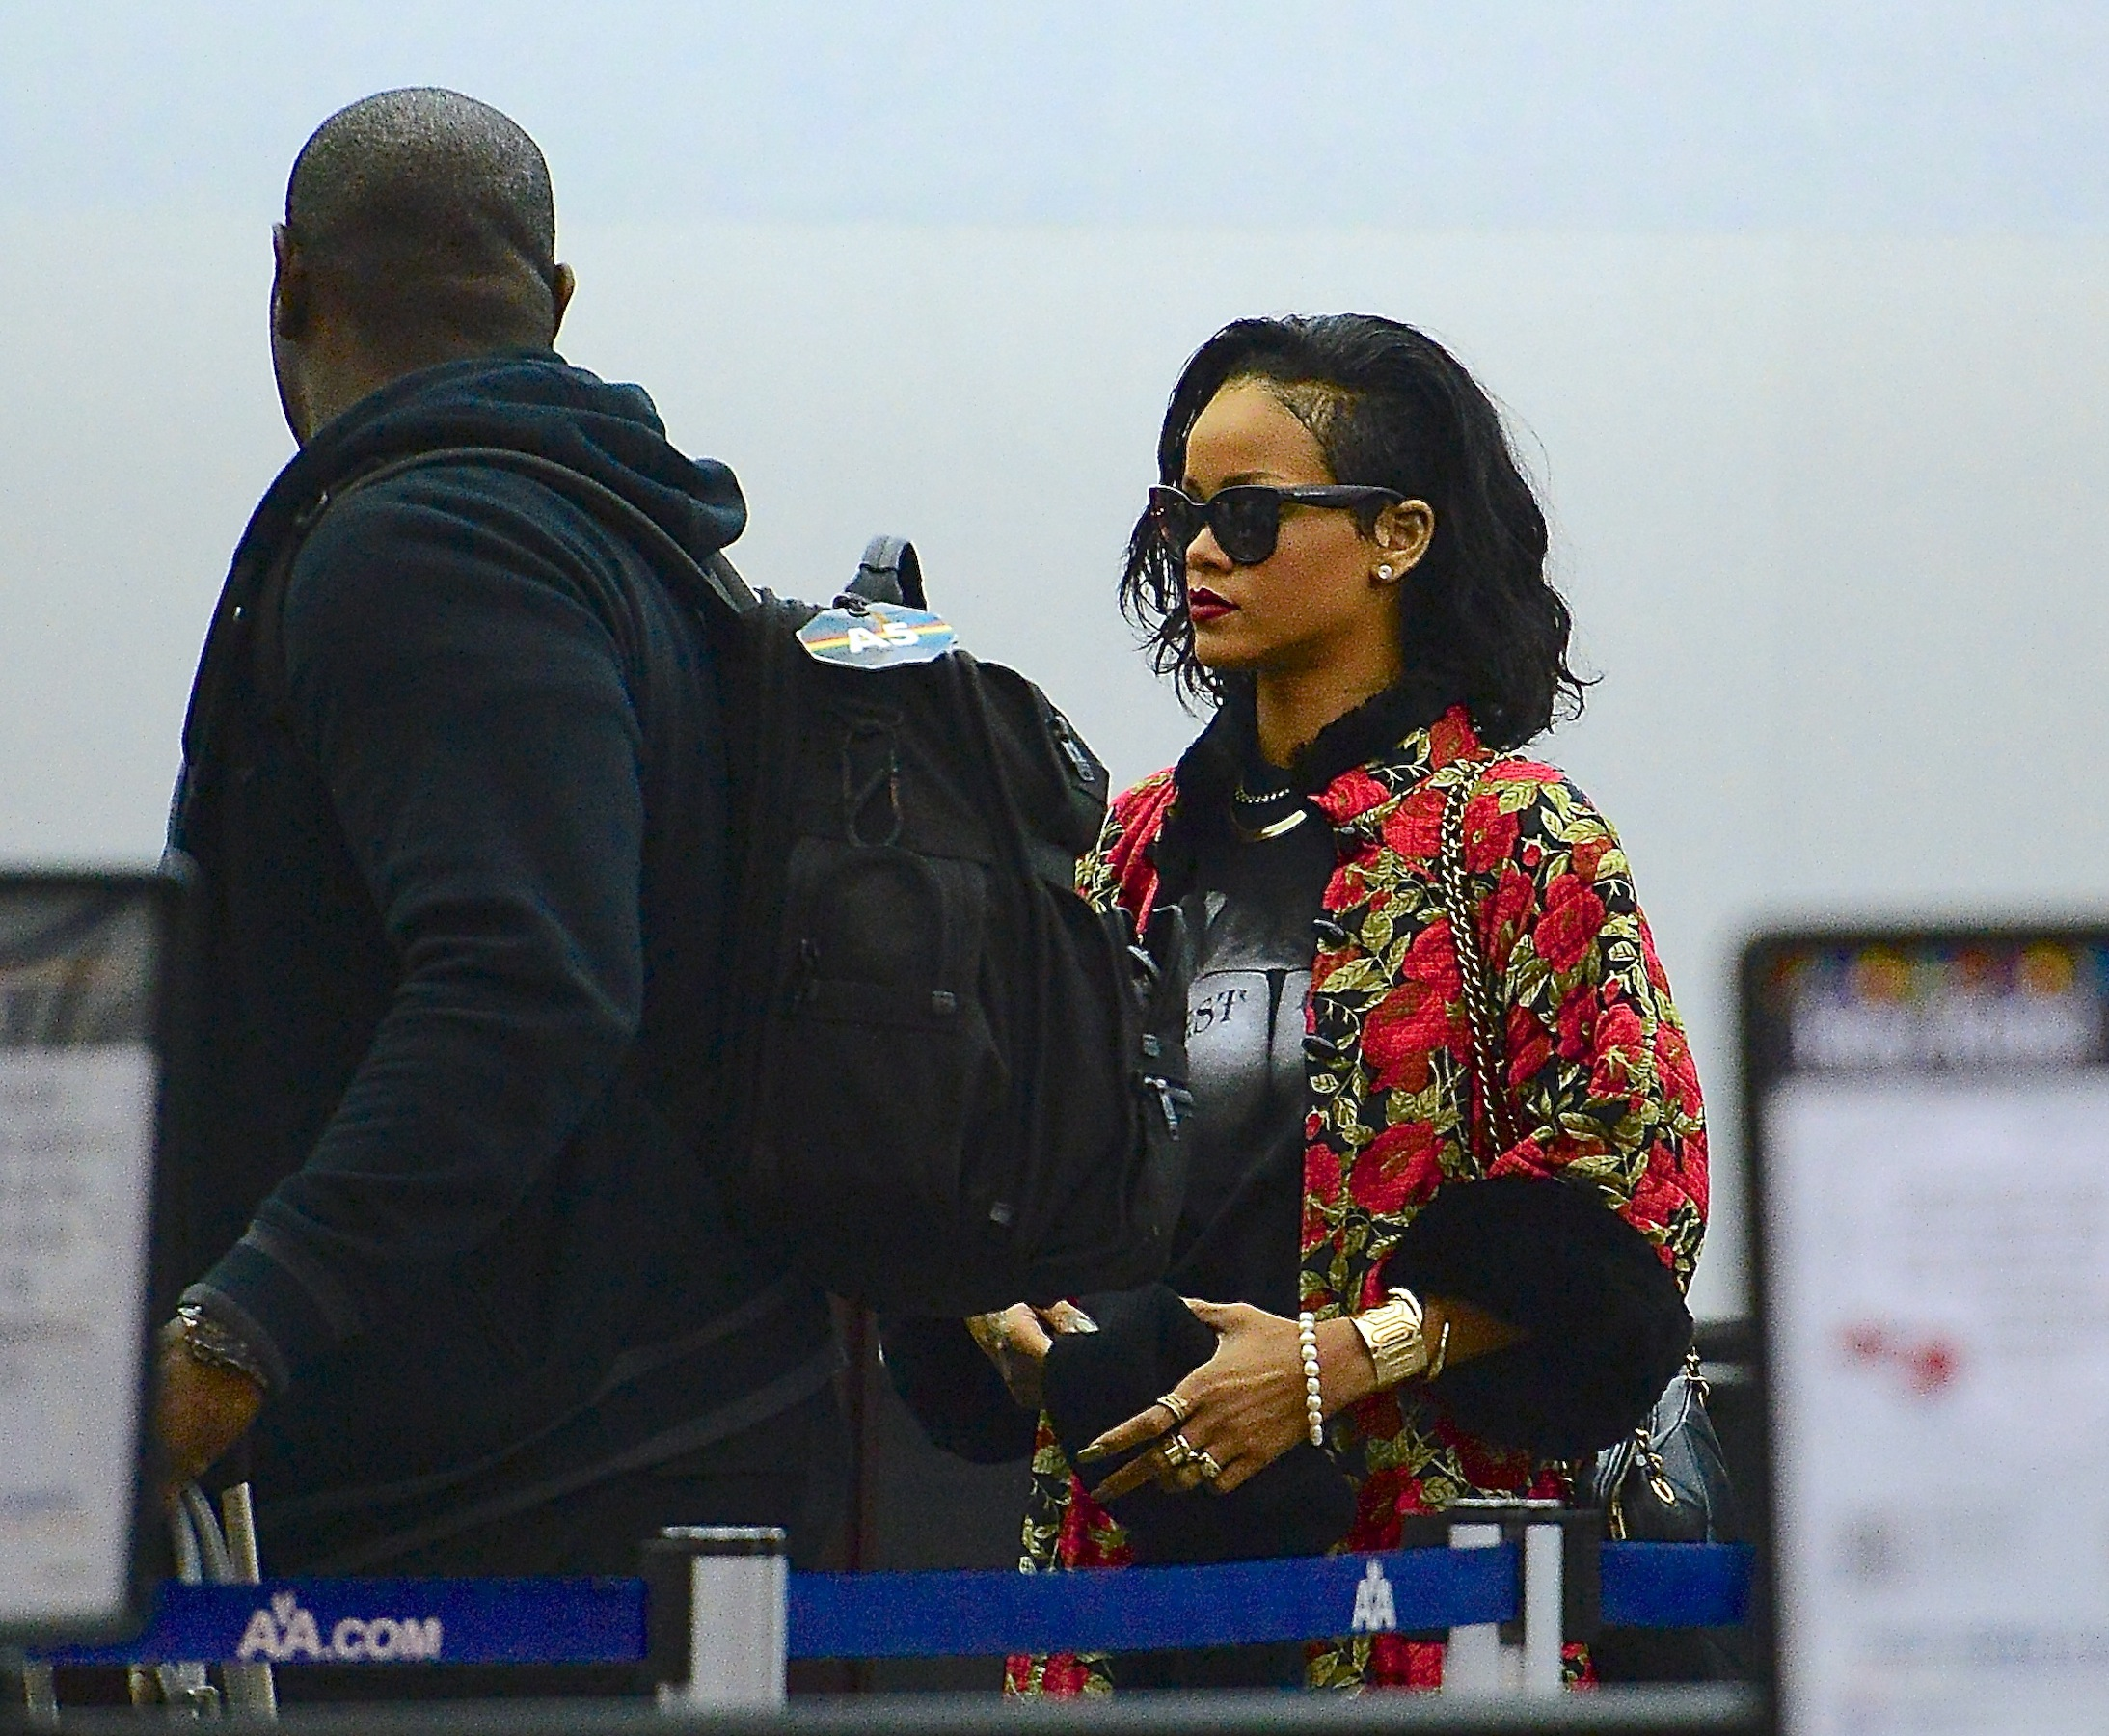 Rihanna poses with her favorite paparazzi and jokes with a robber mask at the airport